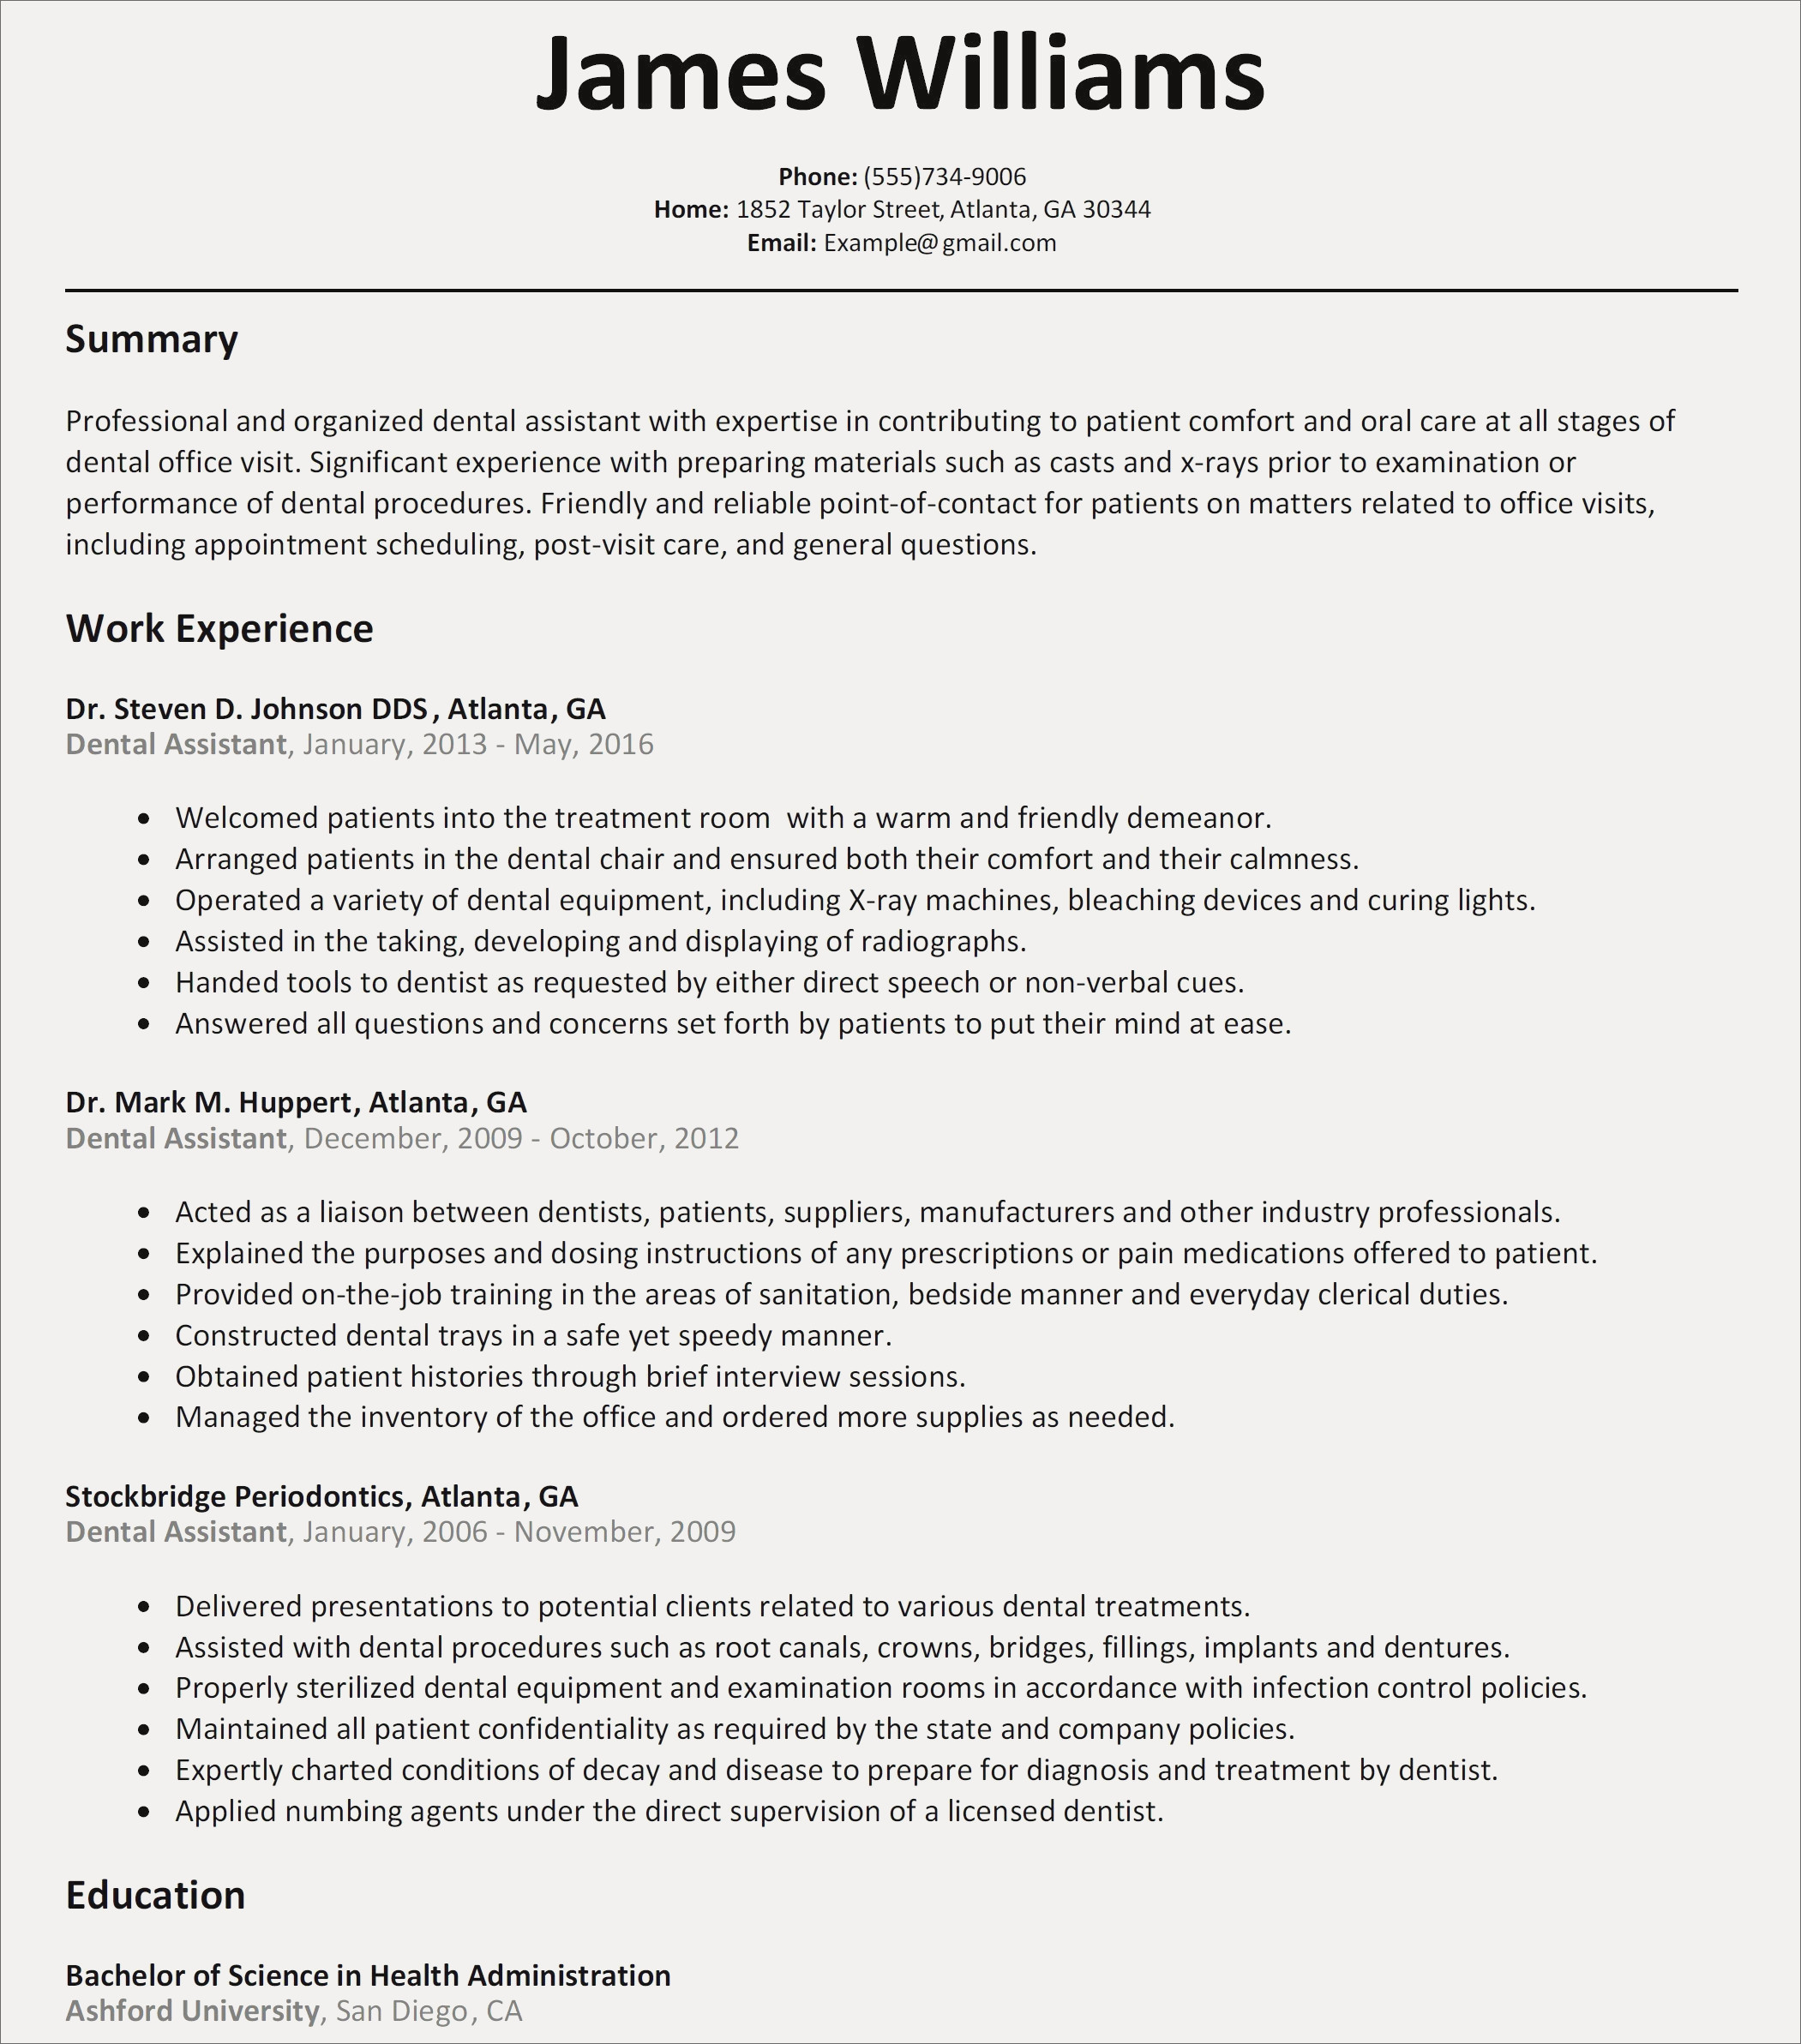 Resume Writing Tips - How to Make A Resume Cove Best How to Write A Cover Letter for